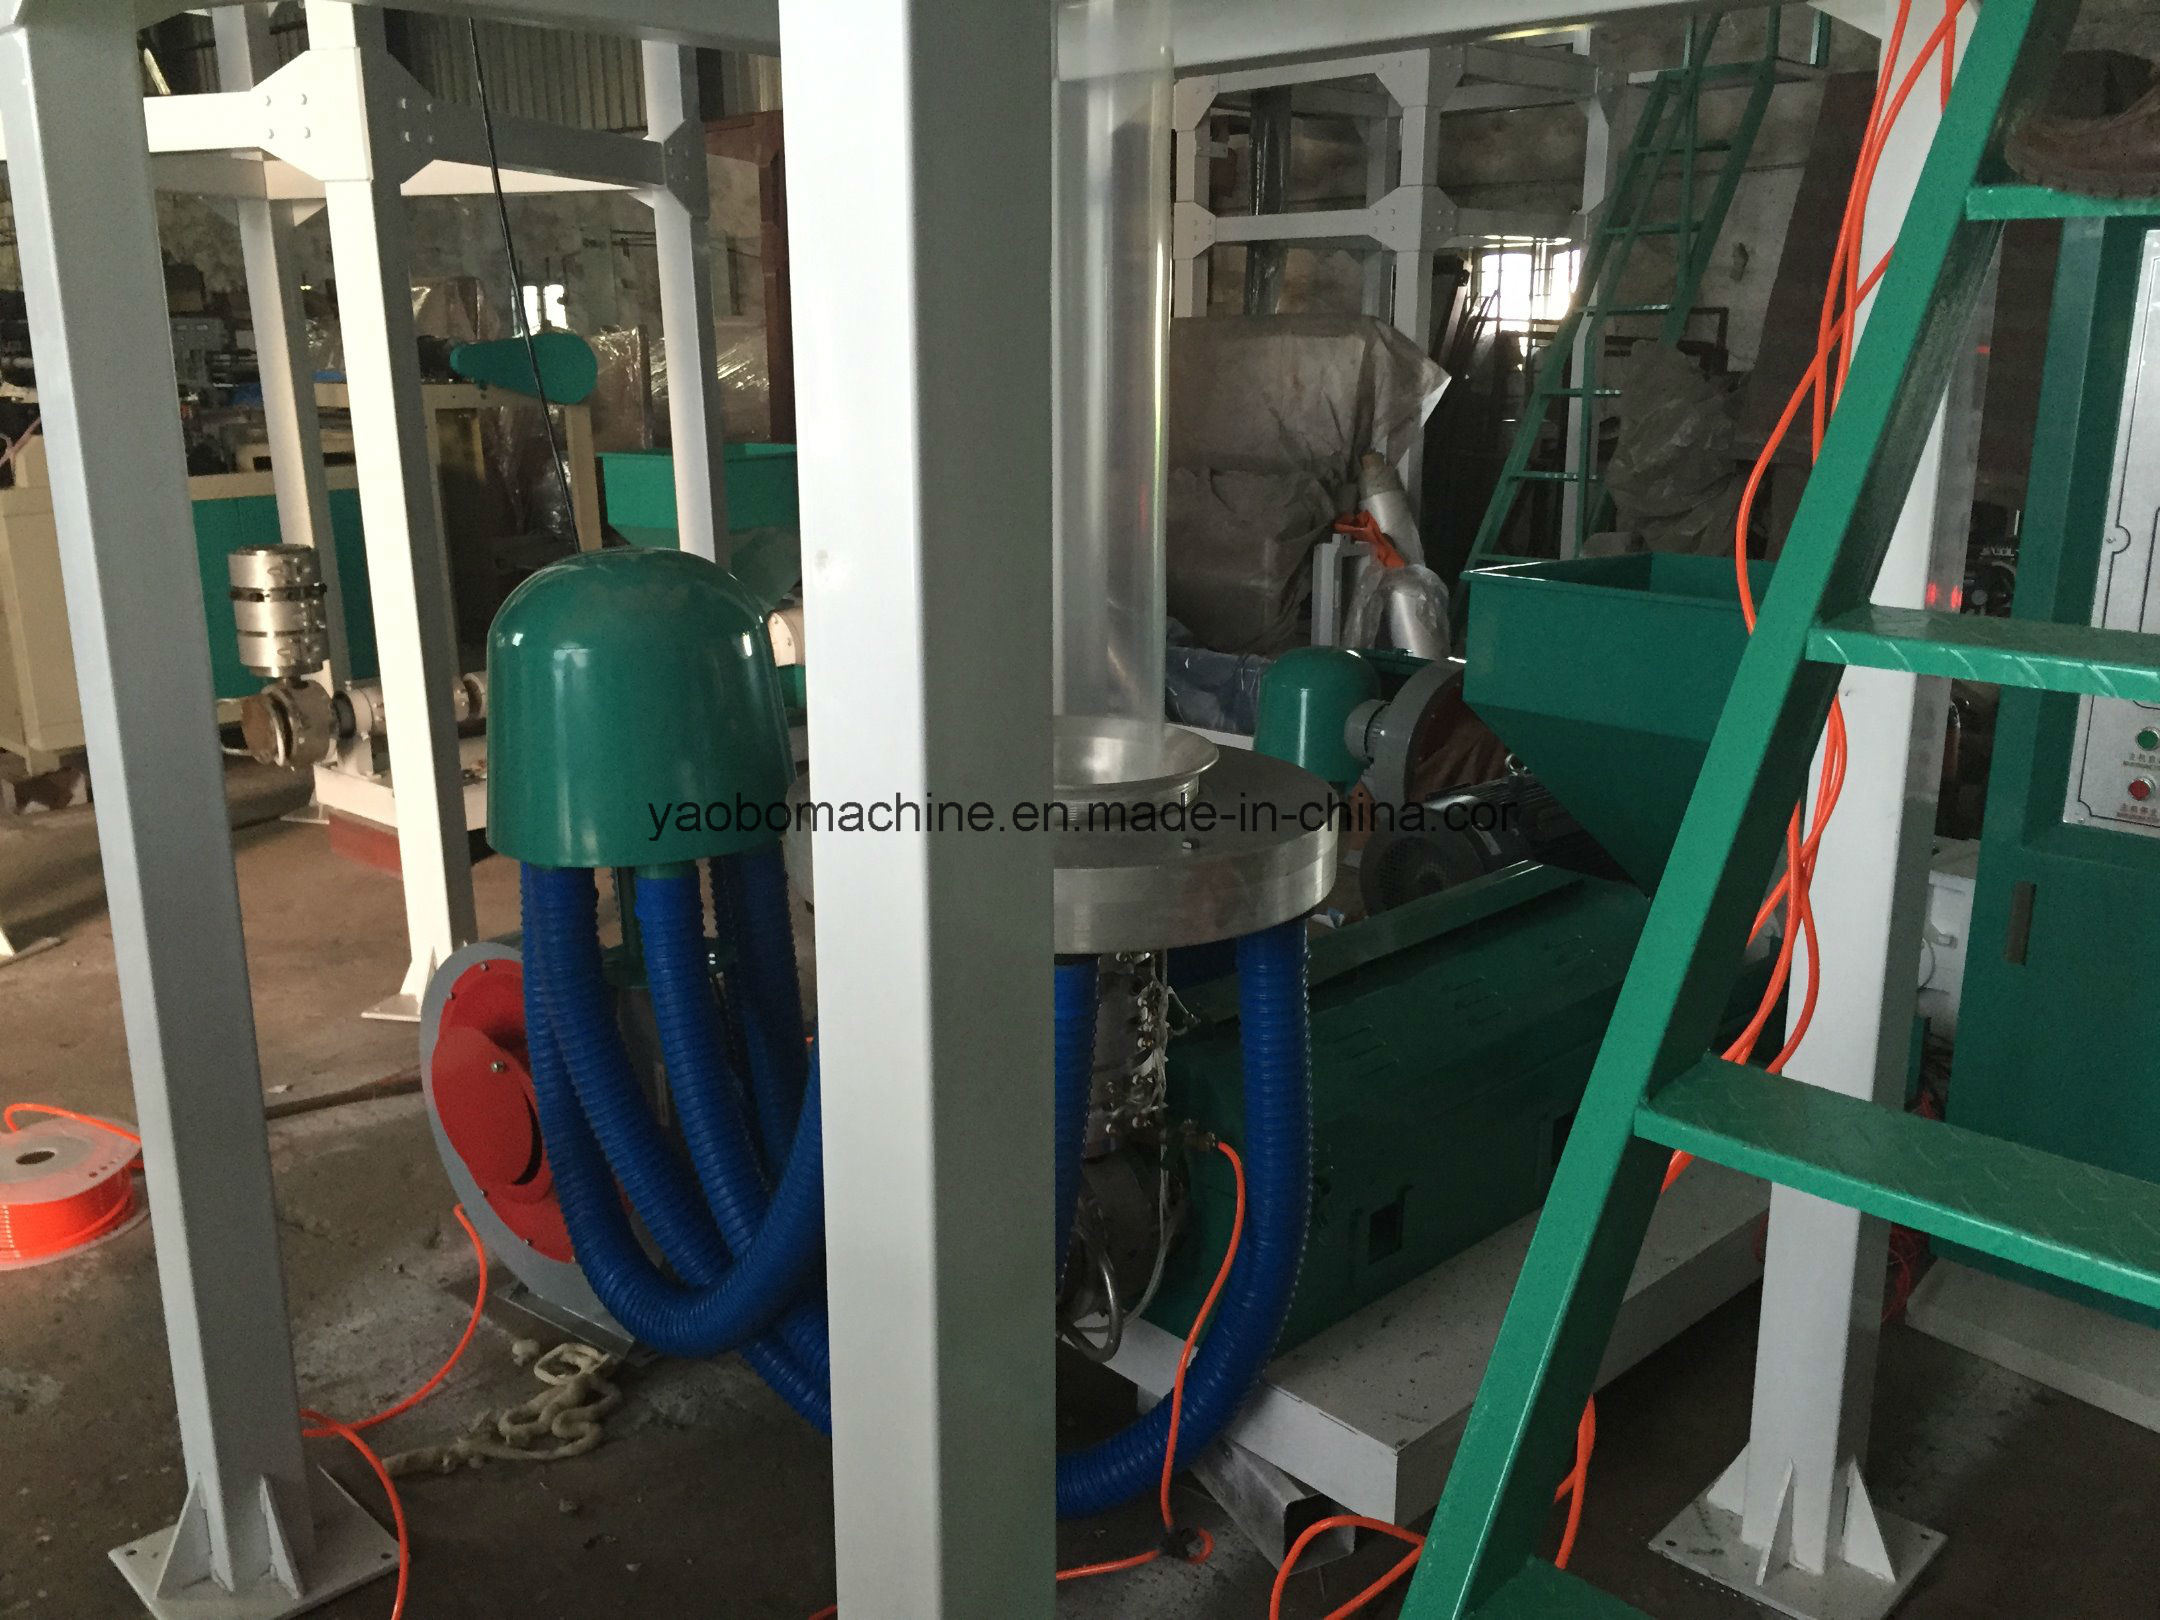 Sj-a HDPE&LDPE Film Blowing Machine Made in China